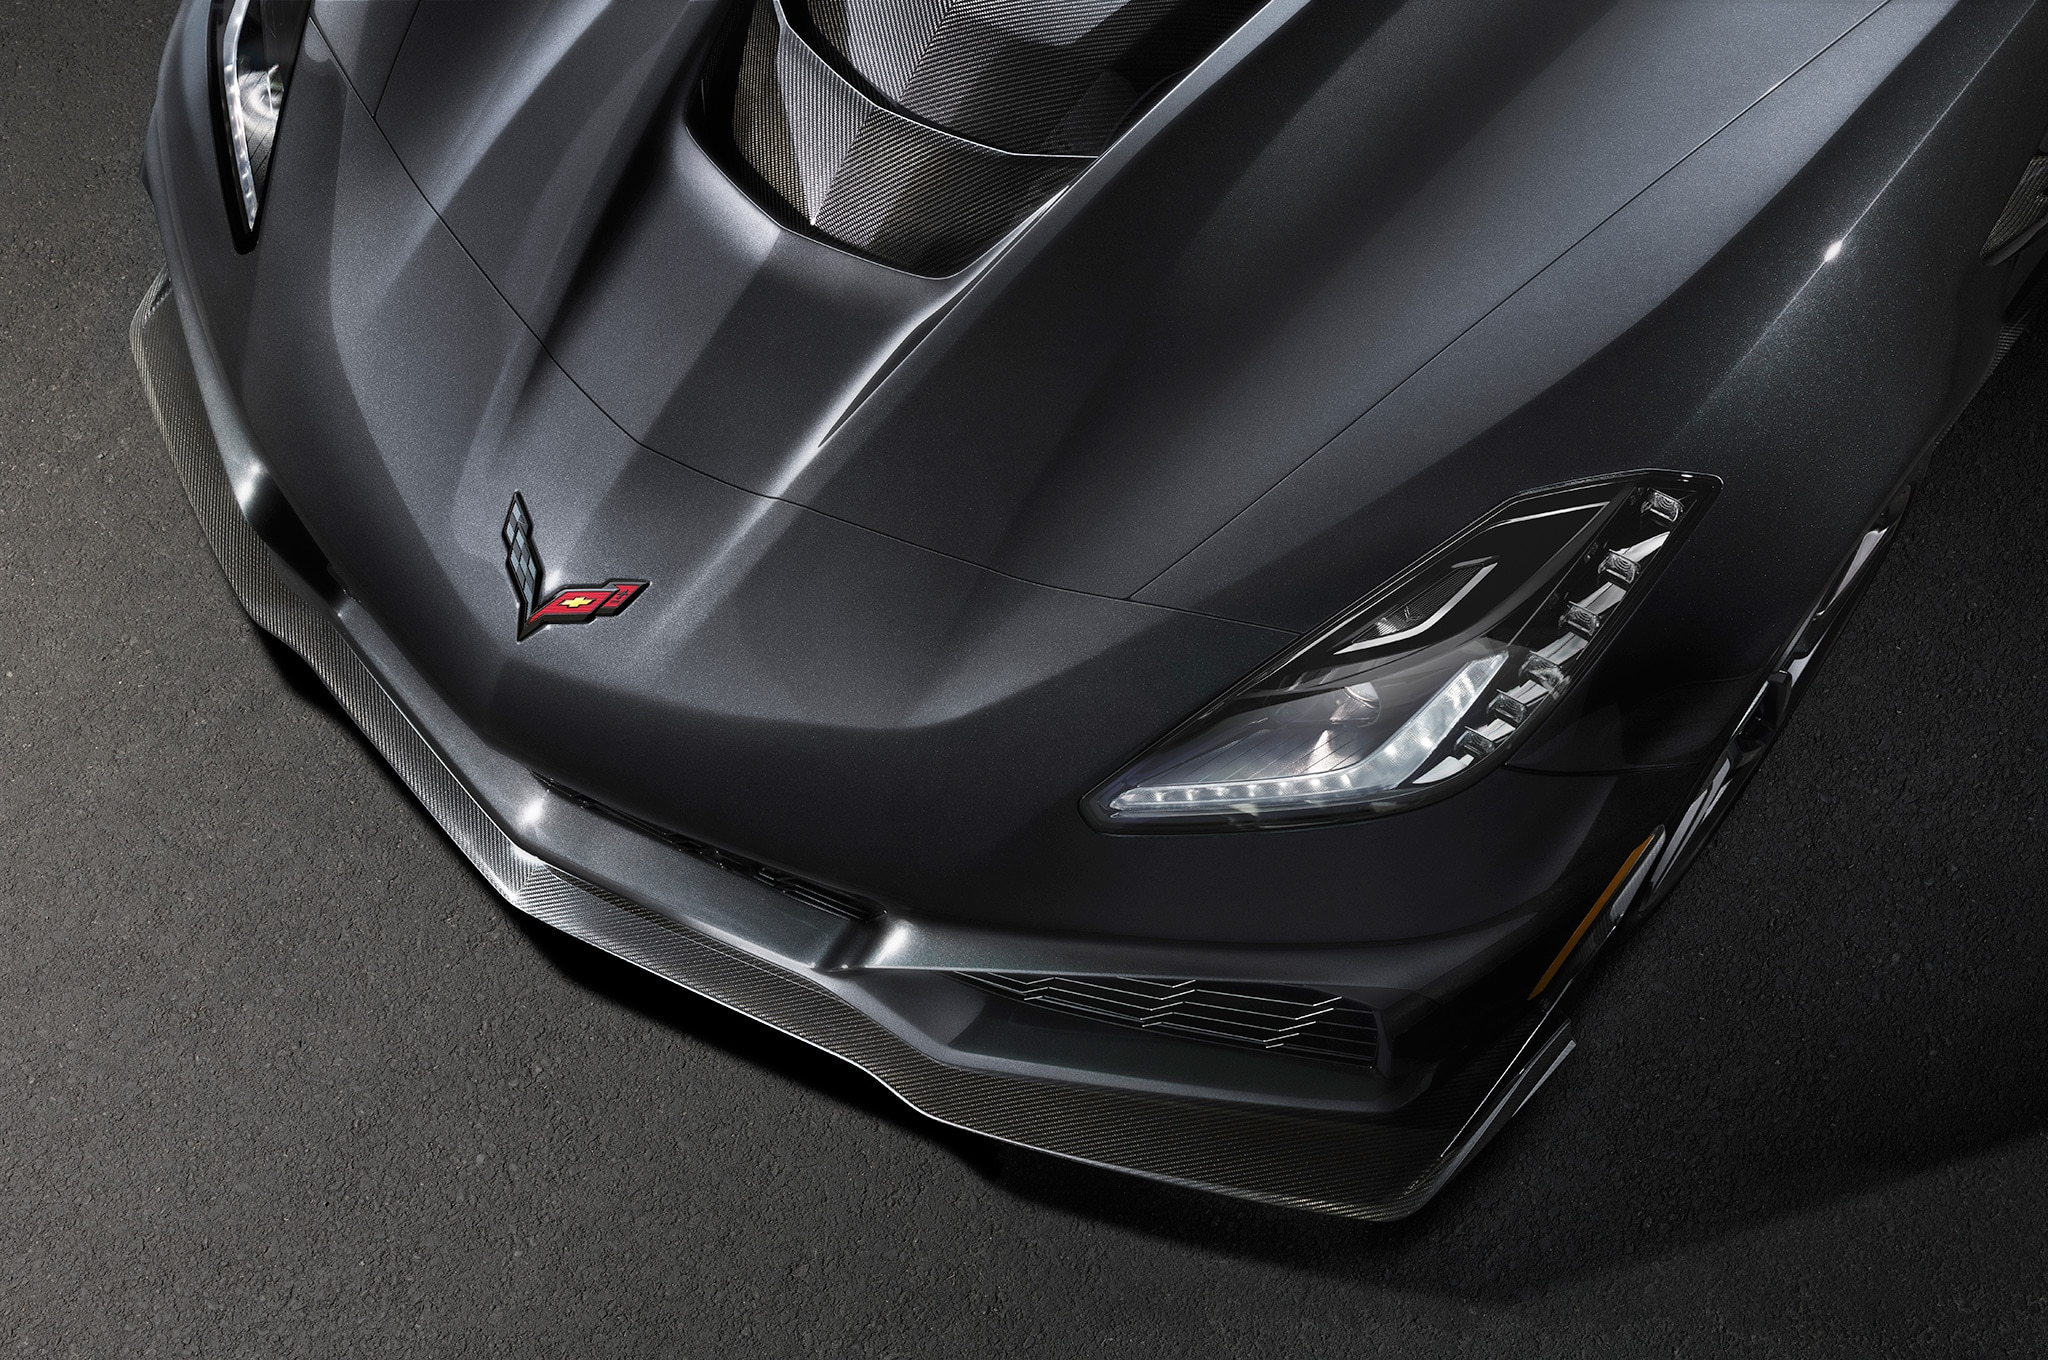 Chevrolet Corvette ZR1 revealed